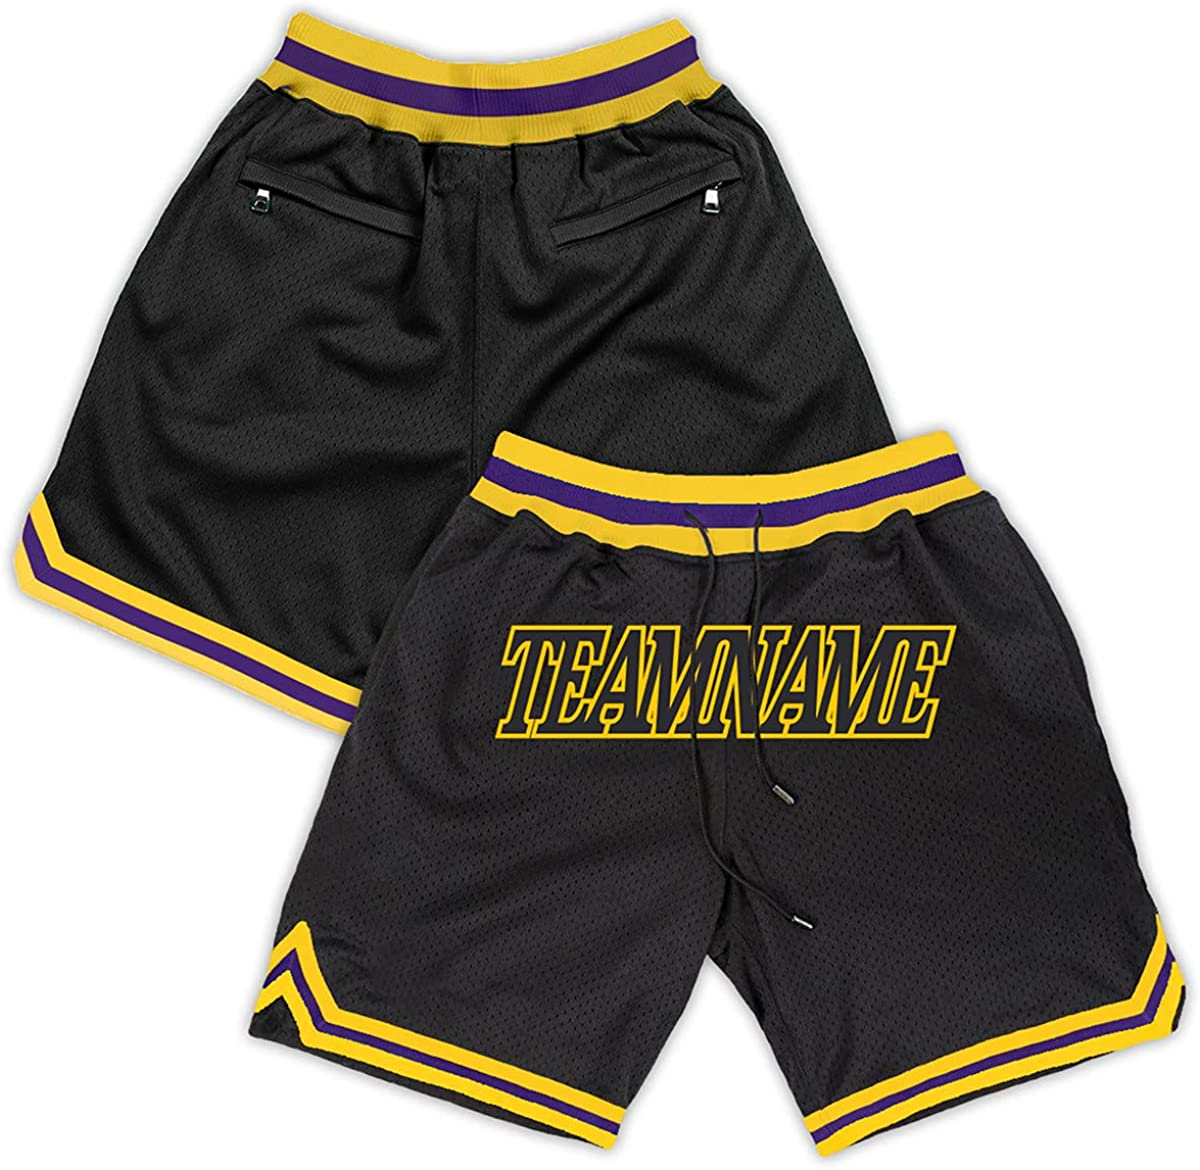 Men's Basketball Shorts W Pockets Custom Name Spor Stitched New product Discount is also underway type